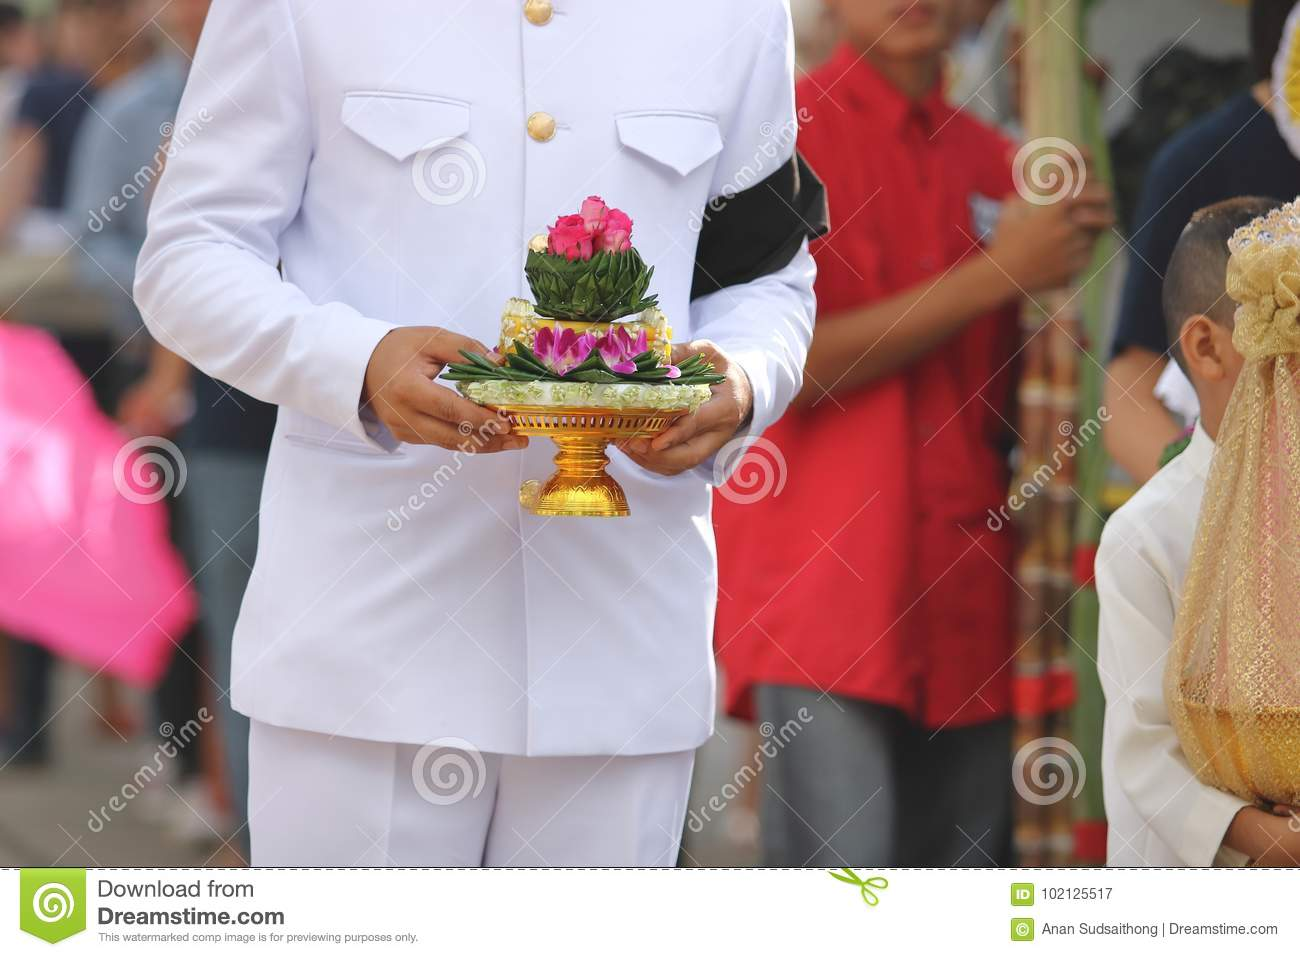 Traditional Wedding Gifts From Groom To Bride: Groom Holding Tray Of Gifts Or Khan Makk In Thai